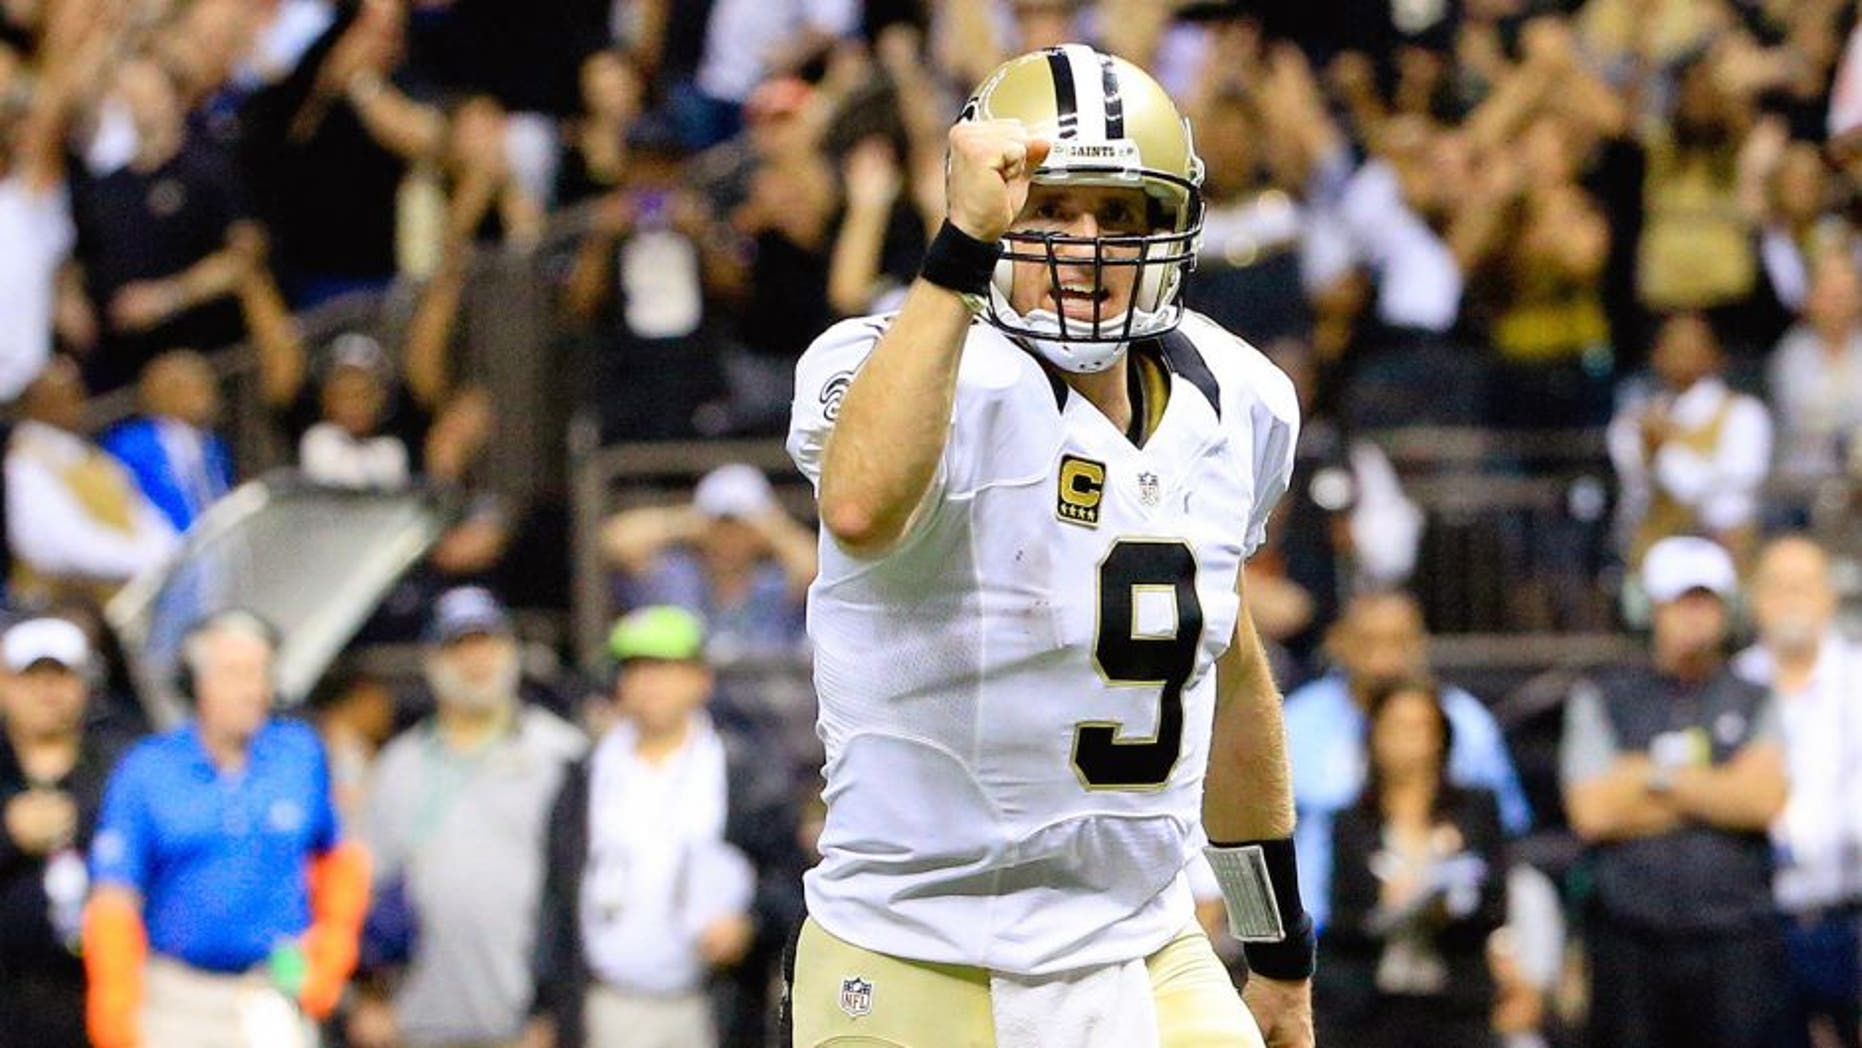 Oct 15, 2015; New Orleans, LA, USA; New Orleans Saints quarterback Drew Brees (9) celebrates after a touchdown run by running back Mark Ingram (not pictured) during the fourth quarter of a game at the Mercedes-Benz Superdome. Mandatory Credit: Derick E. Hingle-USA TODAY Sports